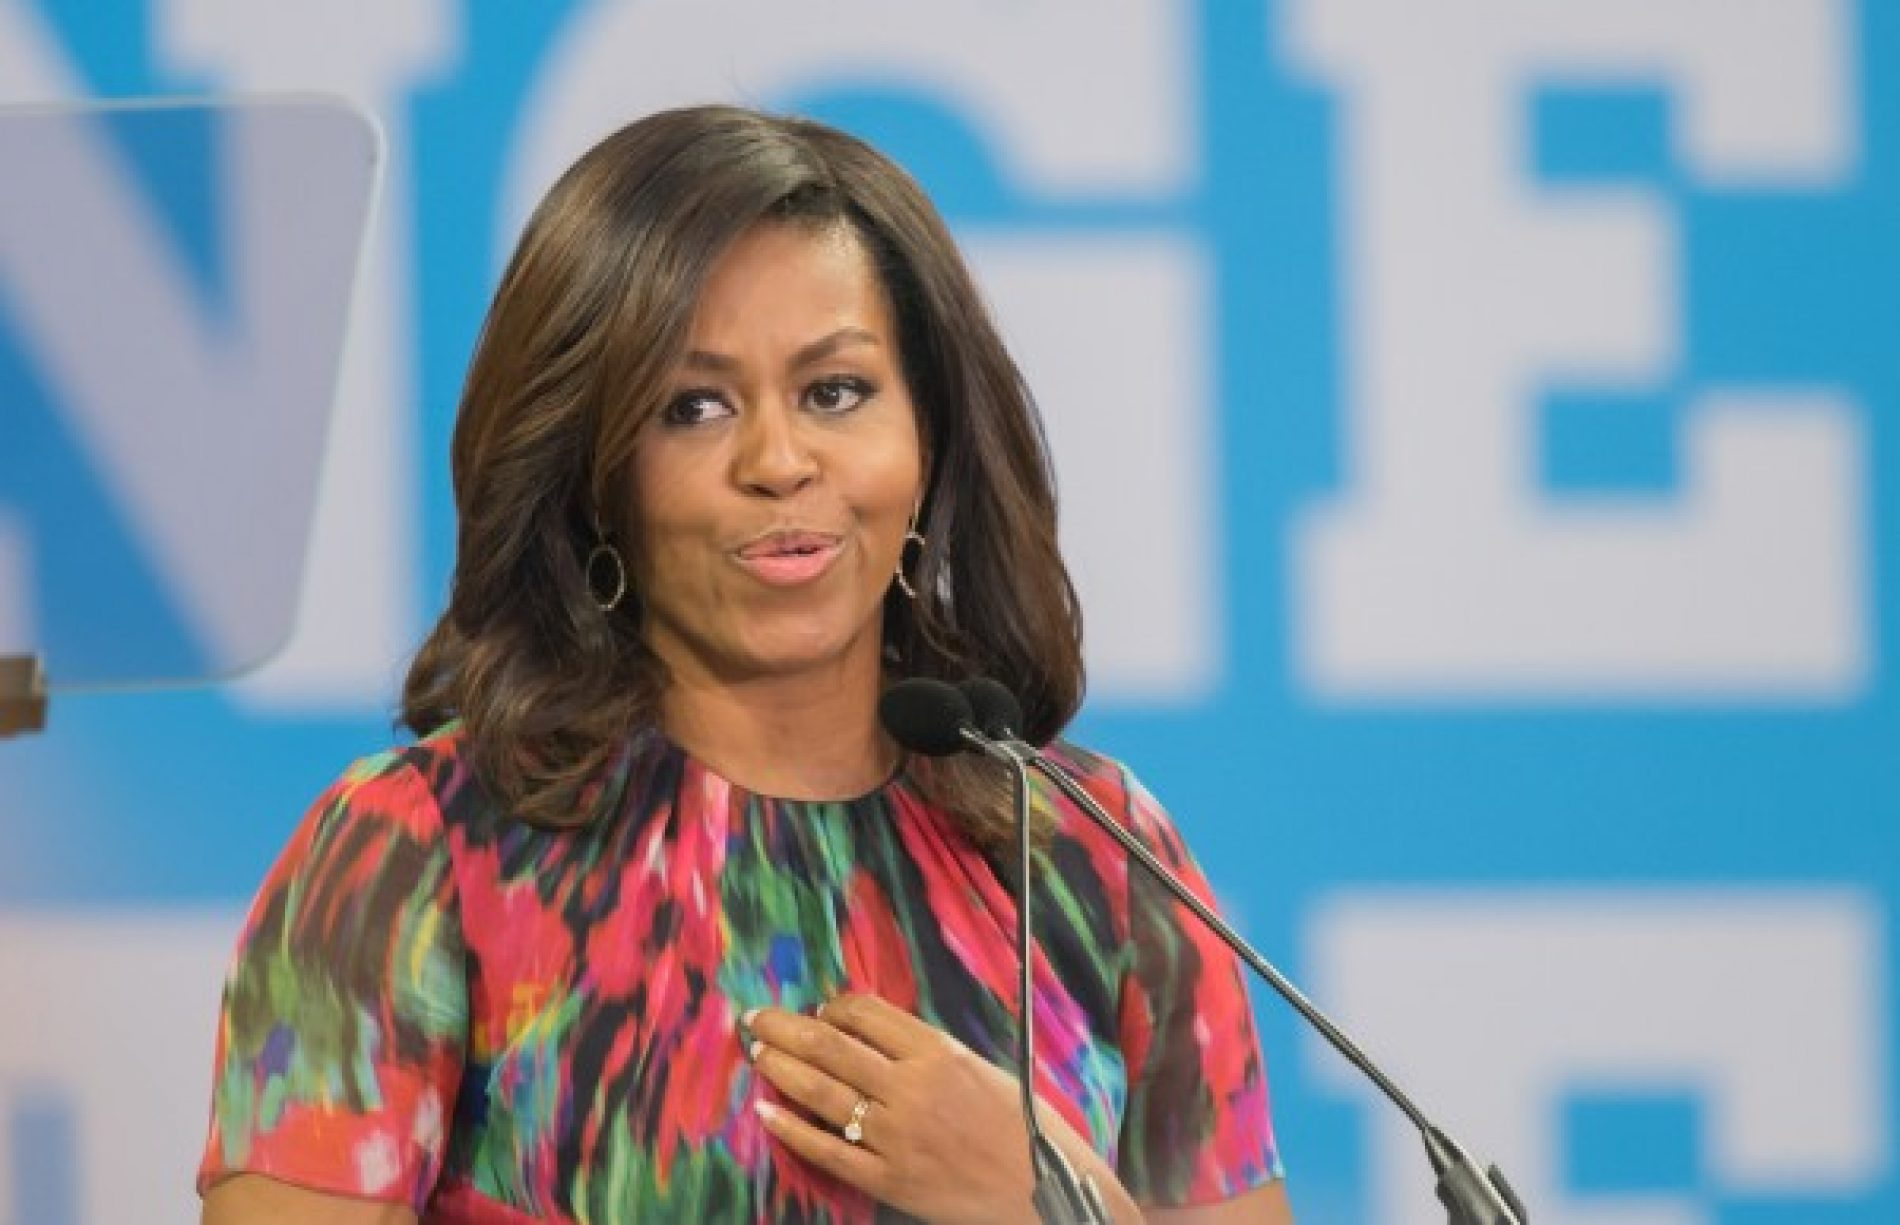 Michelle Obama Shared a Touching Story About the Night America Legalized Gay Marriage